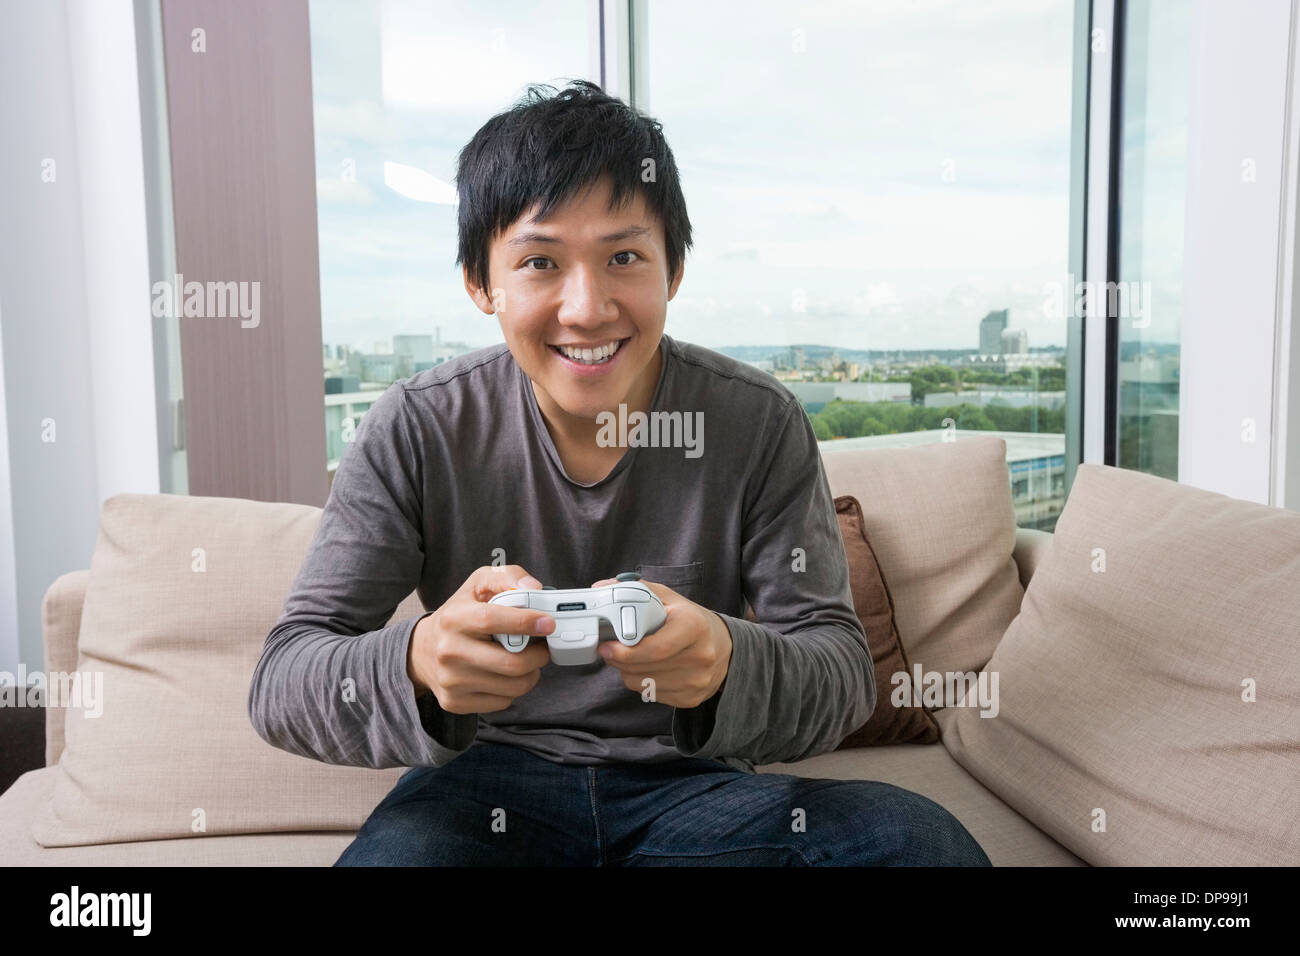 Heureux Mid adult man playing video game sur canapé Photo Stock